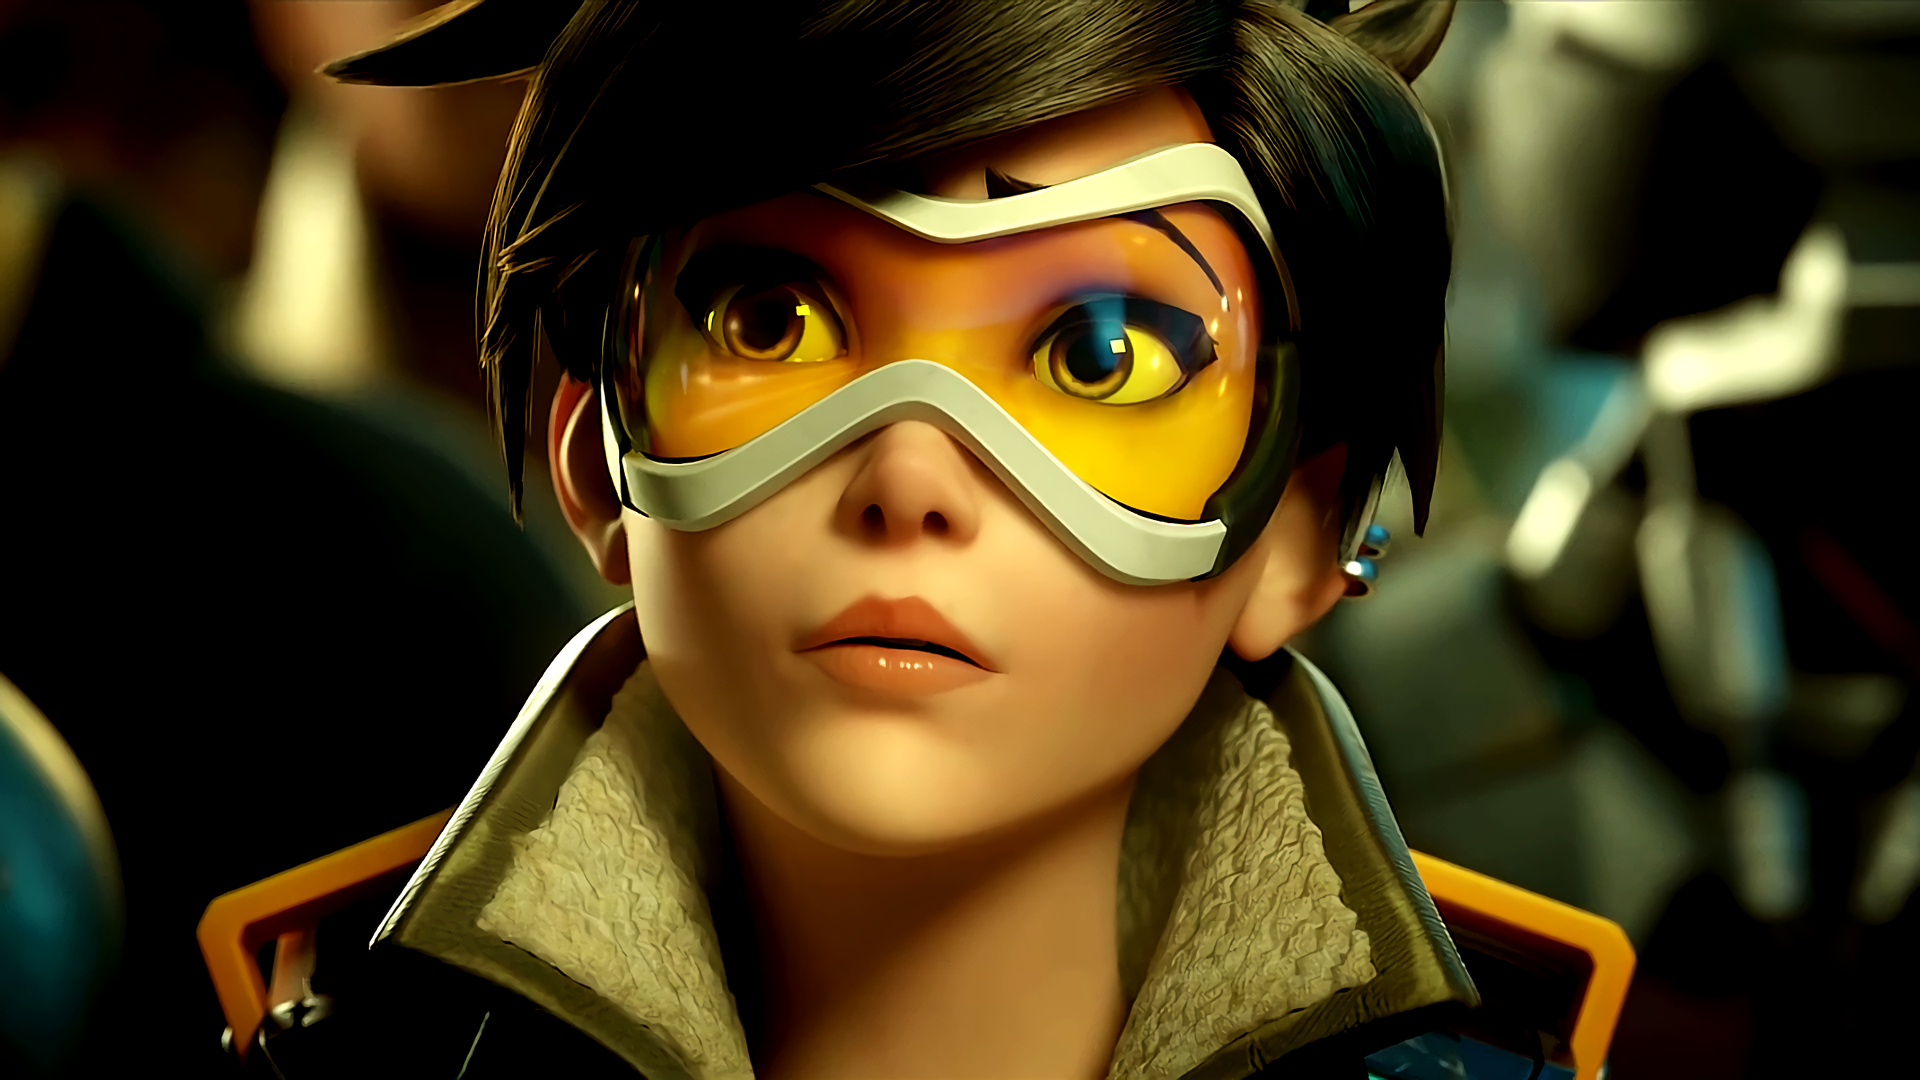 There's No Way The Next 'Overwatch' Hero Is A Little Girl